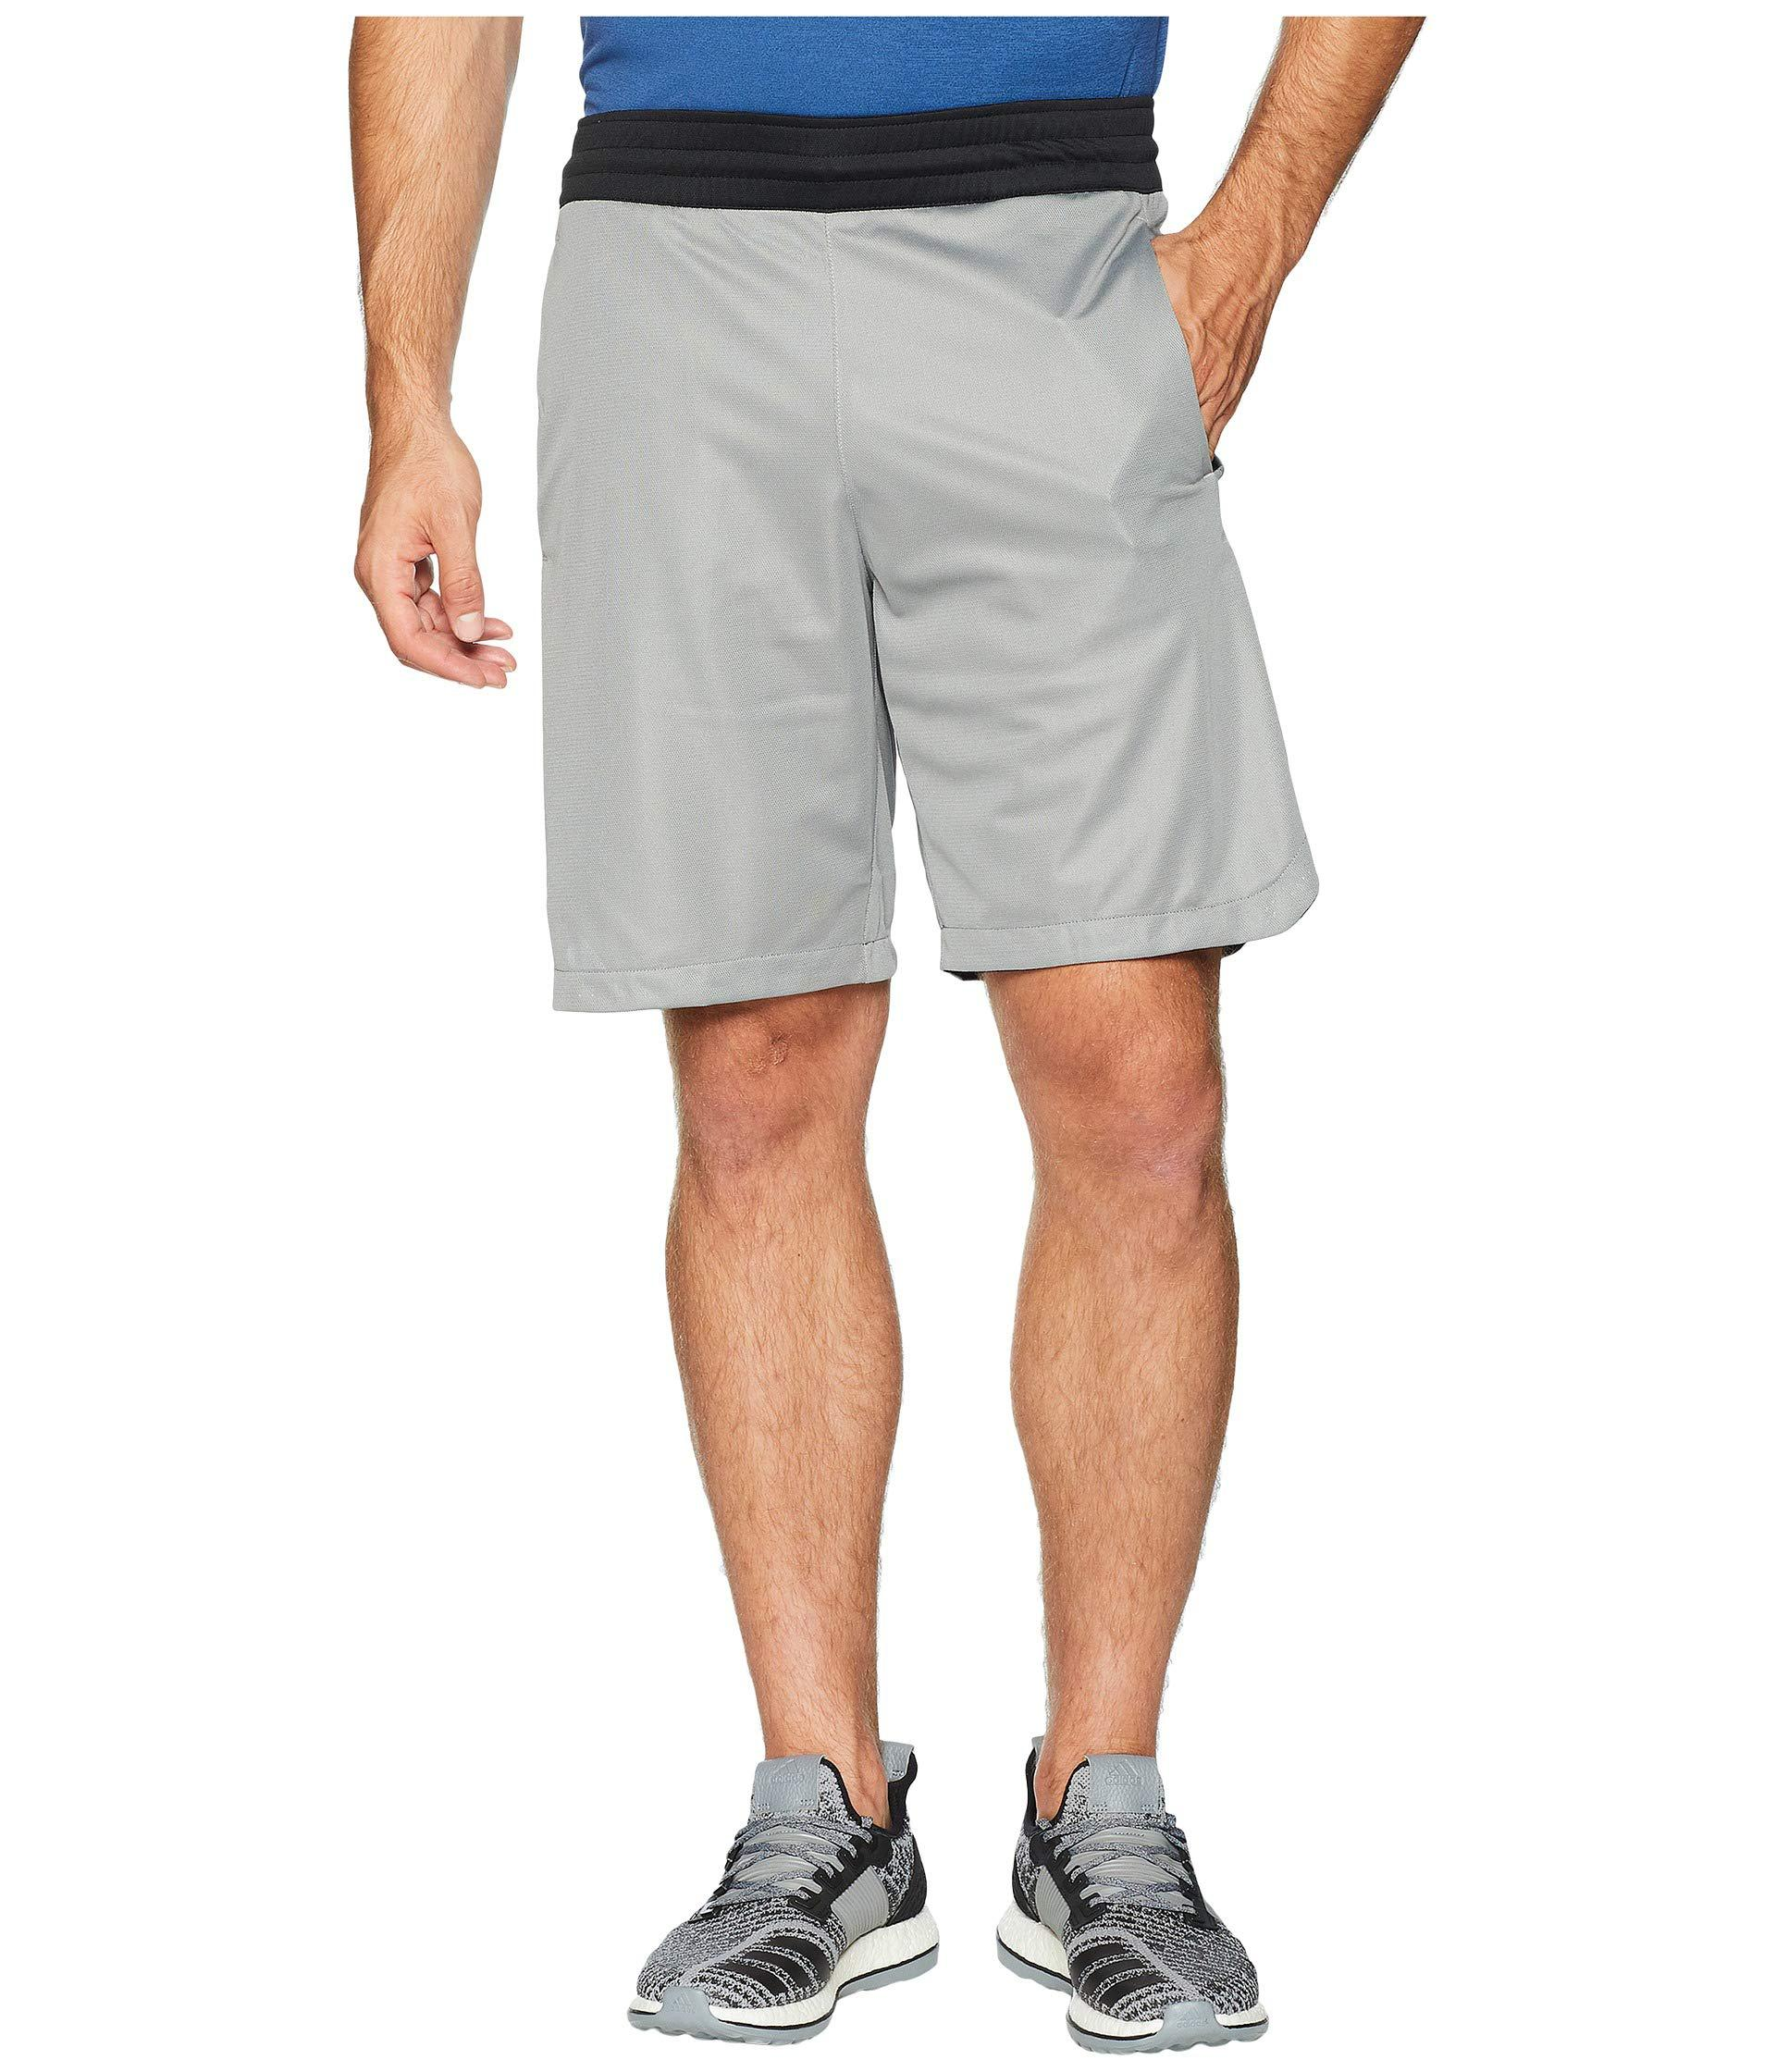 db277b20026c Lyst - Adidas Accelerate 3-stripes Shorts in Gray for Men